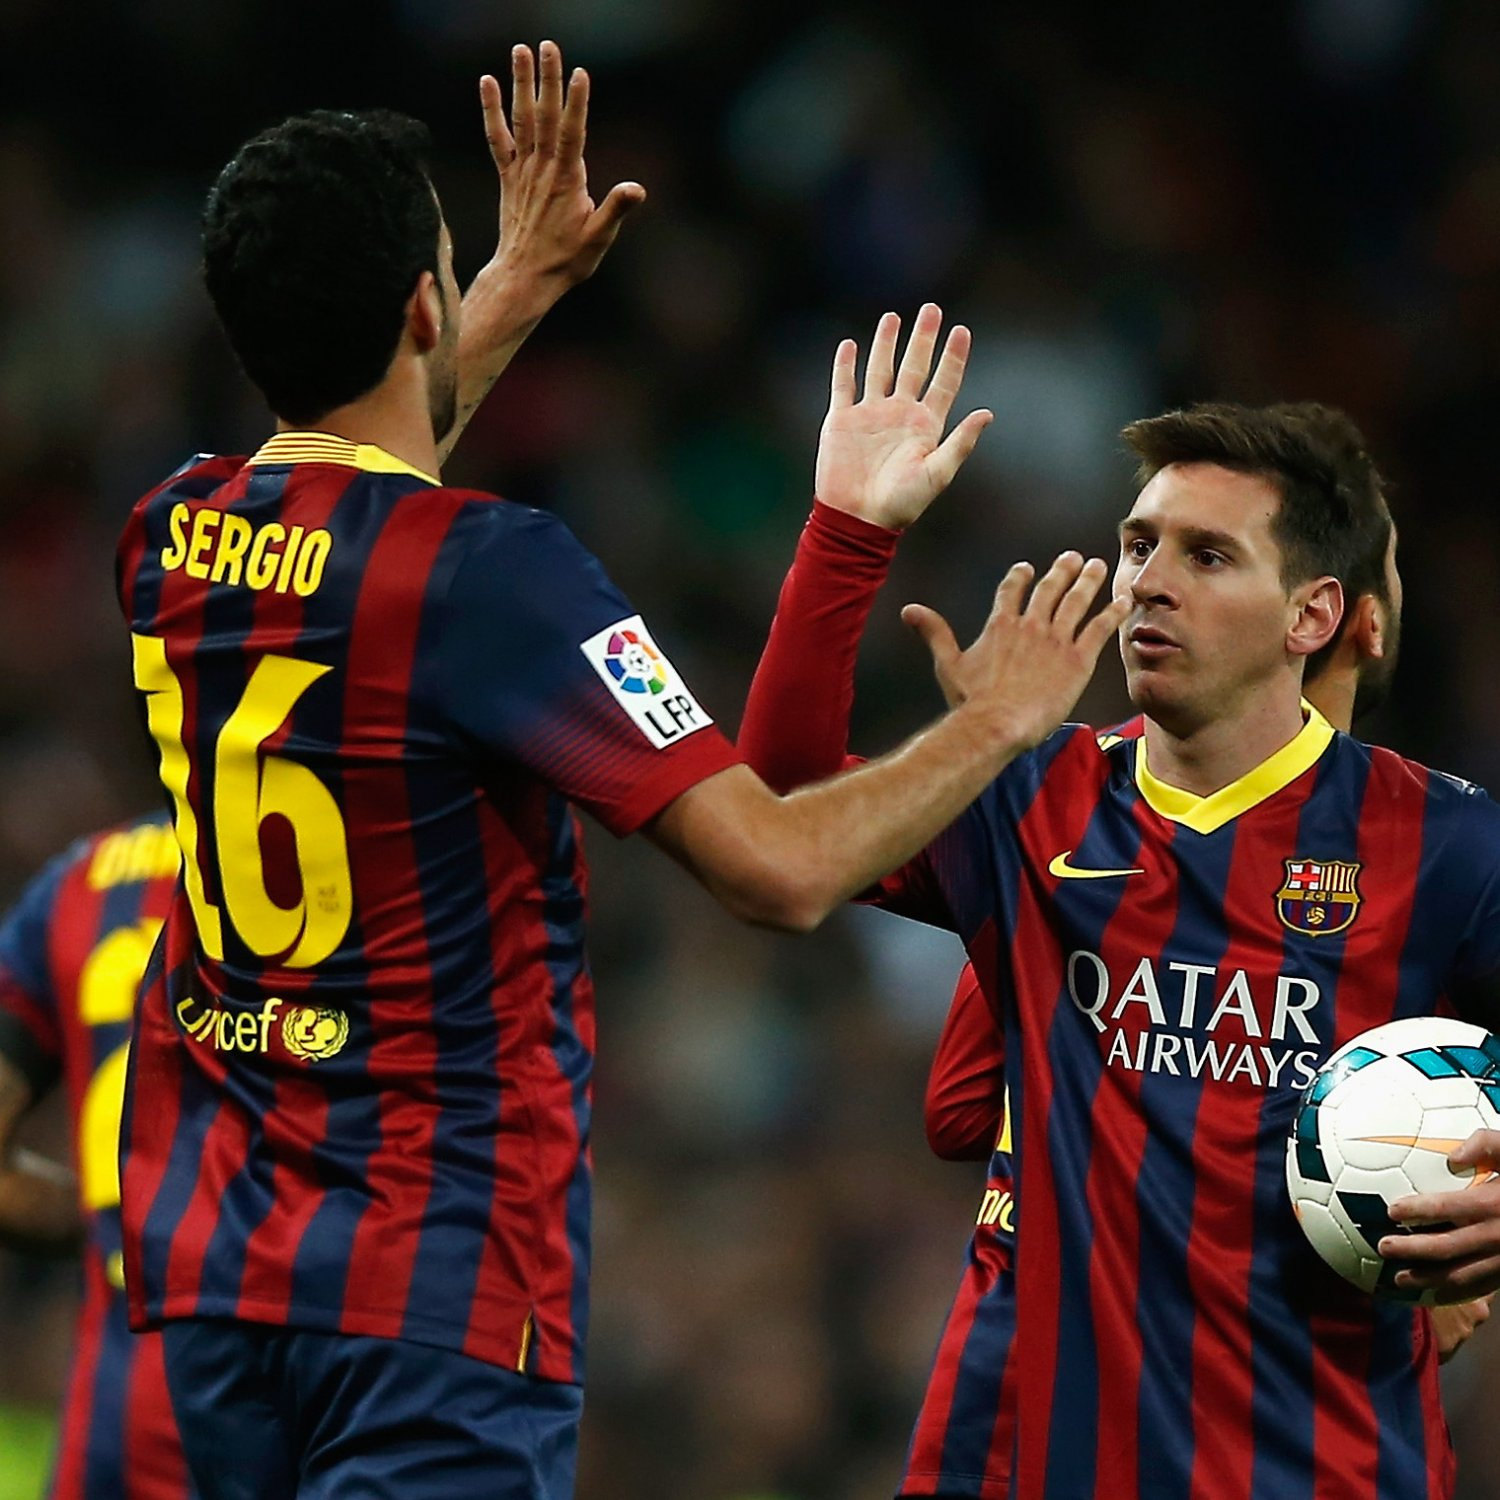 Barcelona Vs Celta Vigo In Youtube: Barcelona Vs. Celta Vigo: La Liga Live Score, Highlights